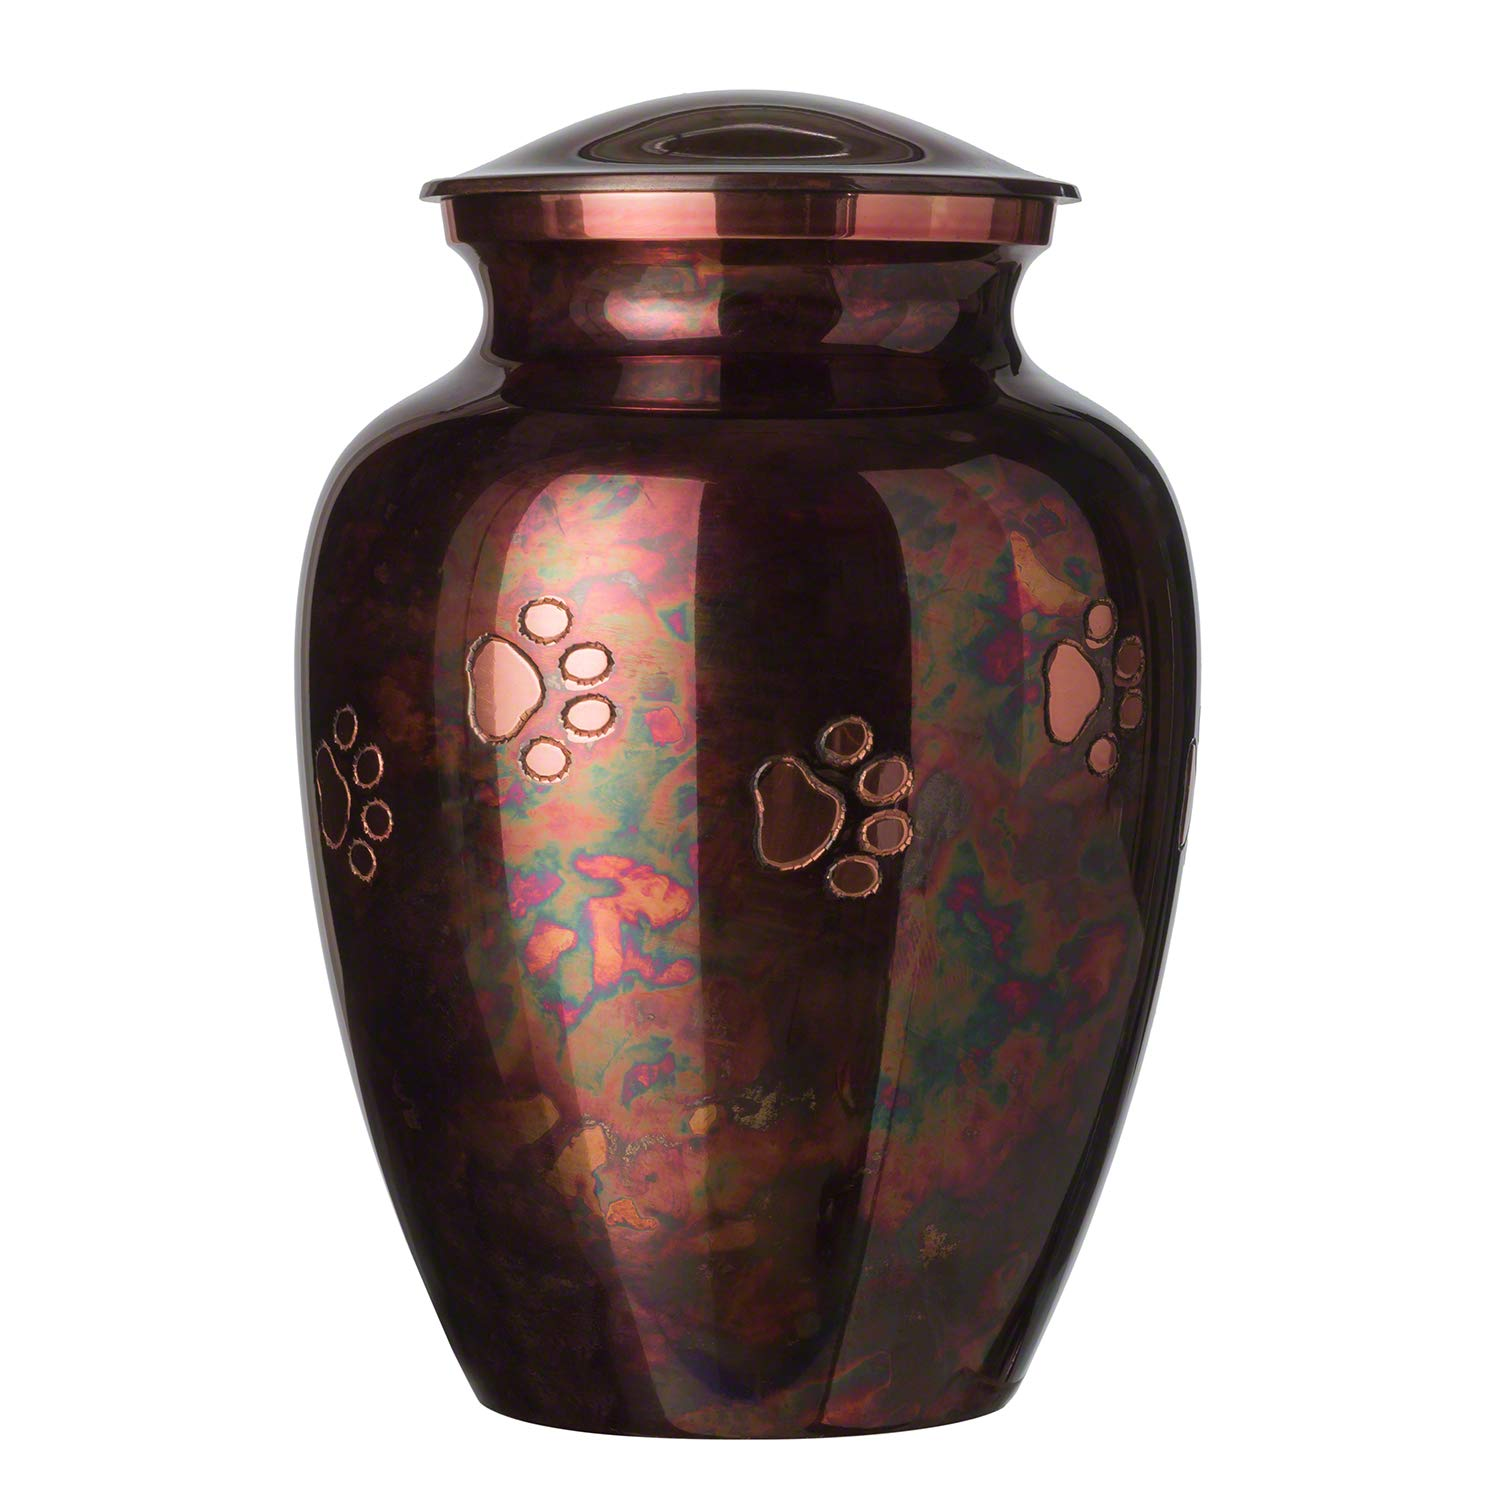 Best Friend Services Ottillie Paws Series Pet Urn Raku Finish with Horizontal Copper Paws (Large) by Best Friend Services